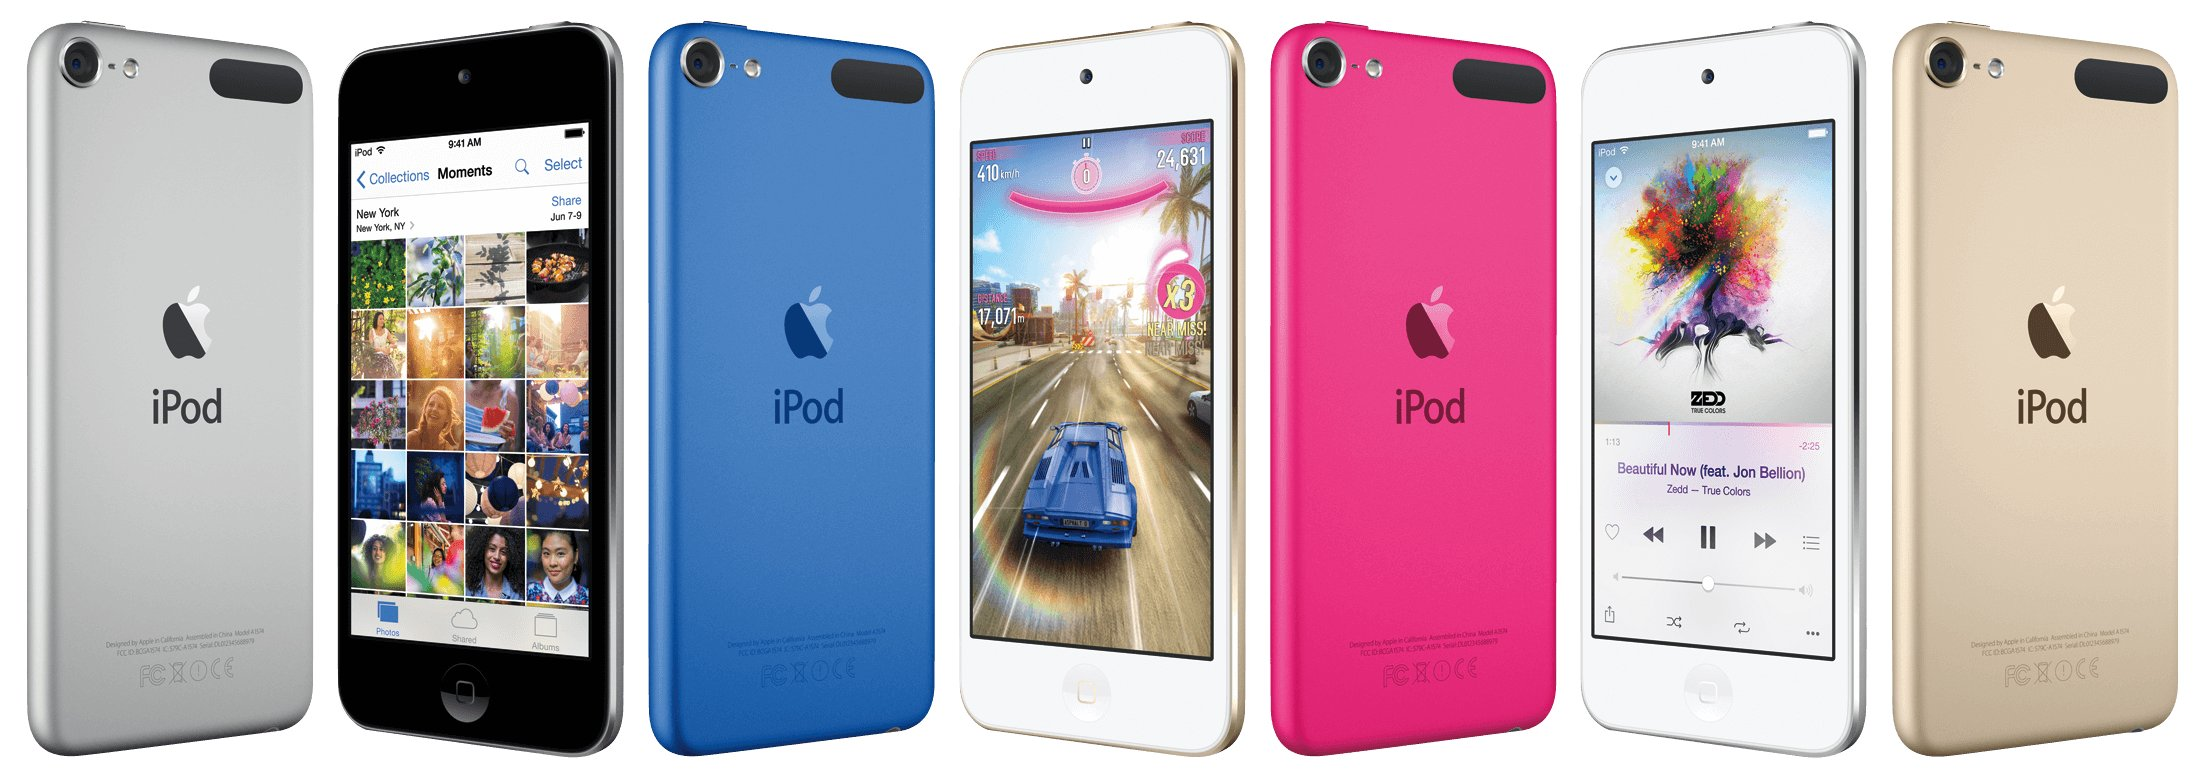 apple, apple ipod touch, apple ipod touch 7, apple ipod touch 7 release date, apple ipod touch 7 specs